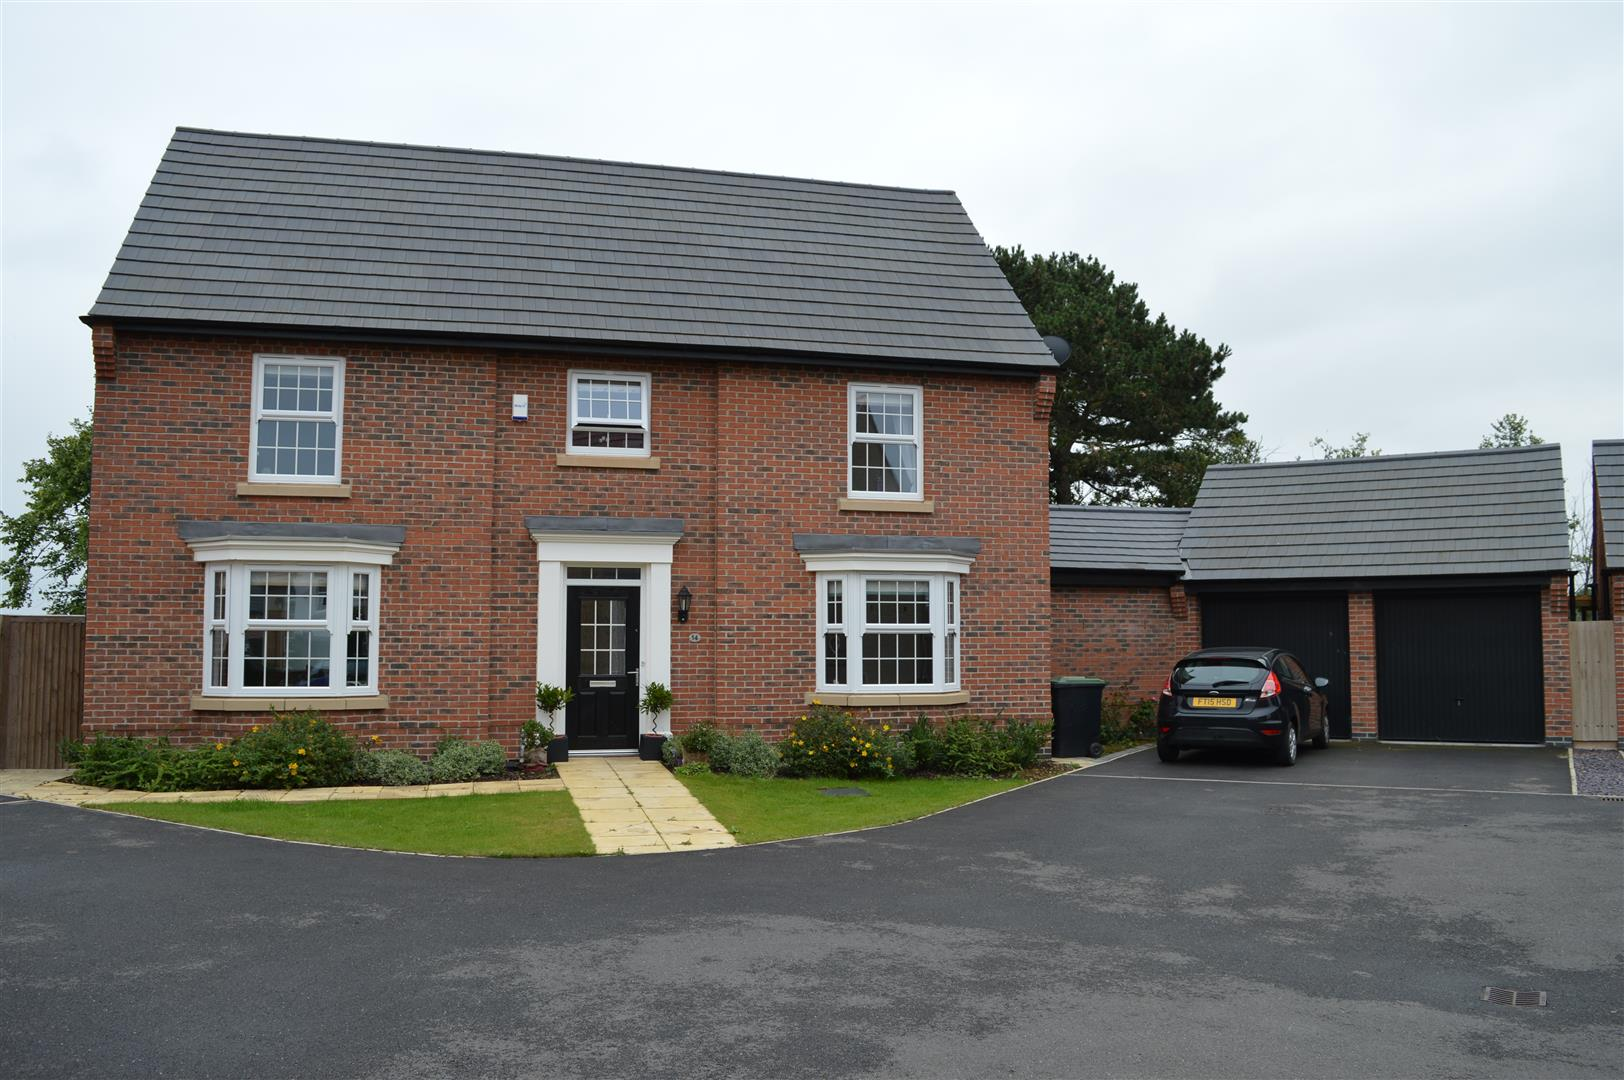 5 bedroom property in Sleaford